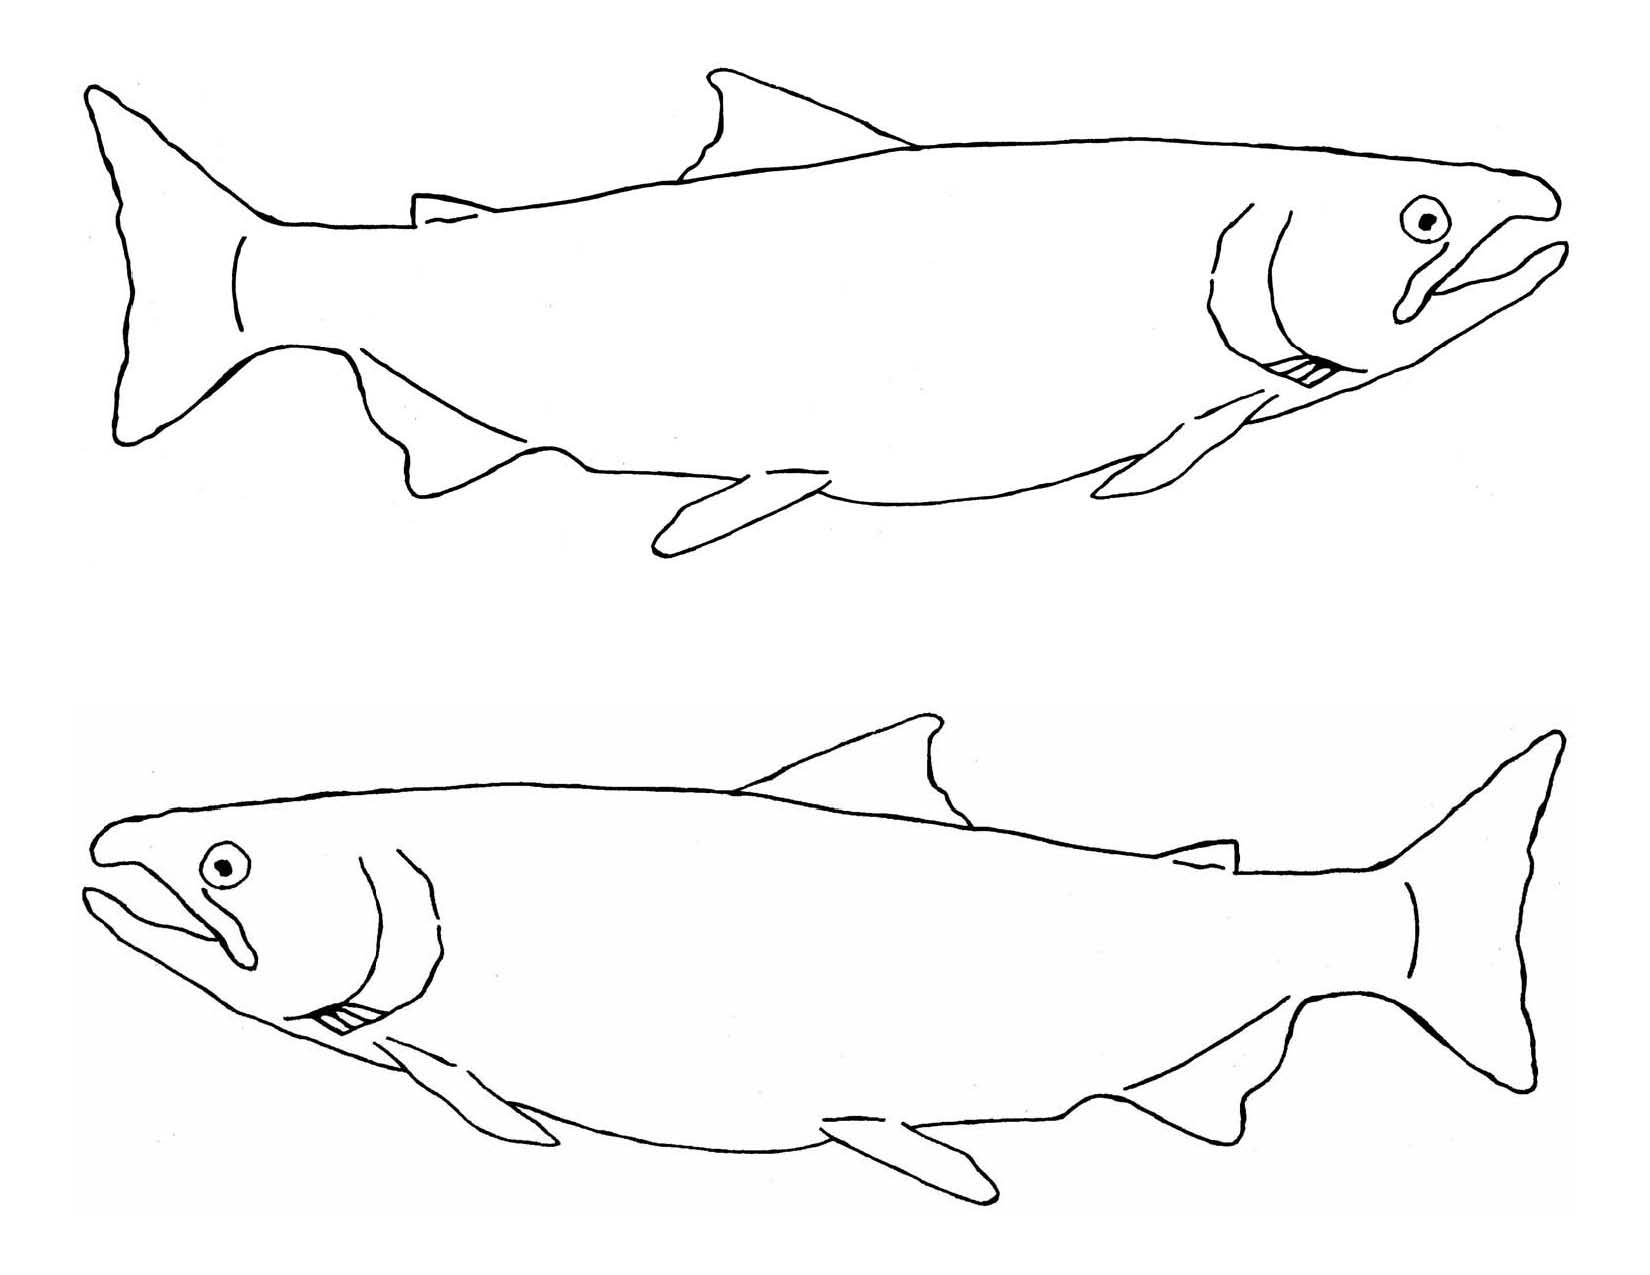 1650x1275 Free Chinook Salmon Coloring Page Drawing At Getdrawings Com